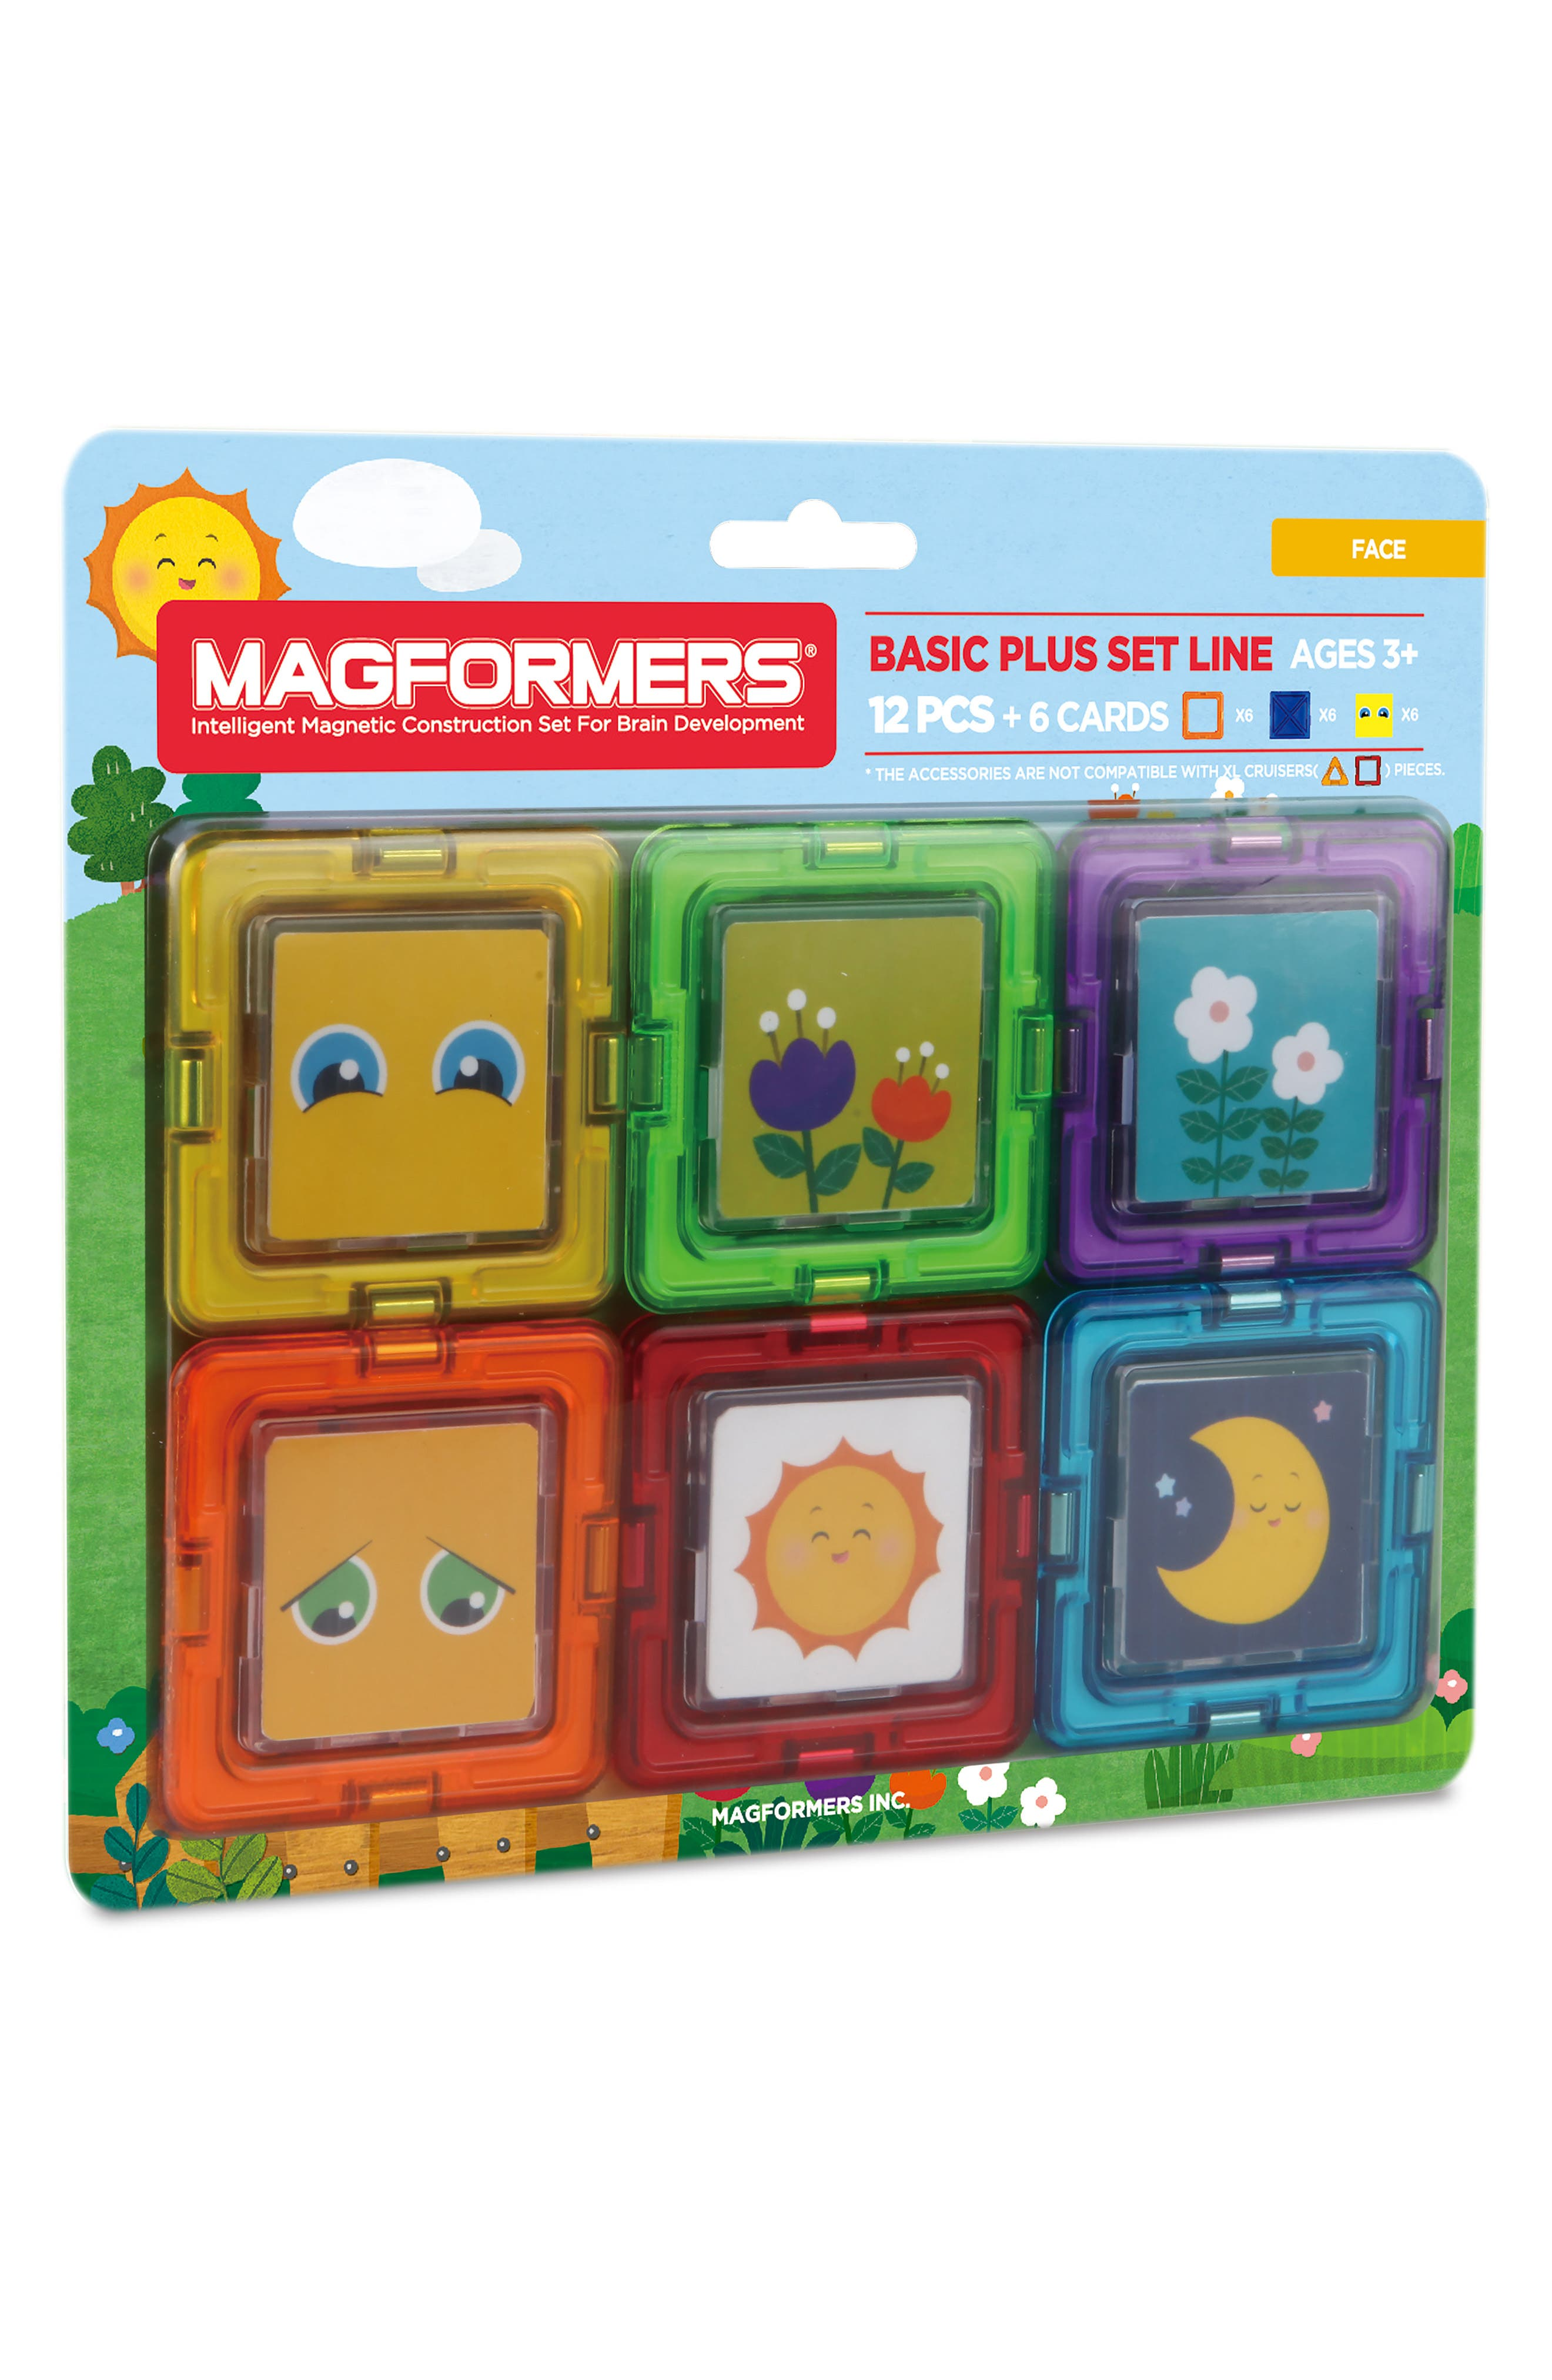 Magformers Kids Toy Shop